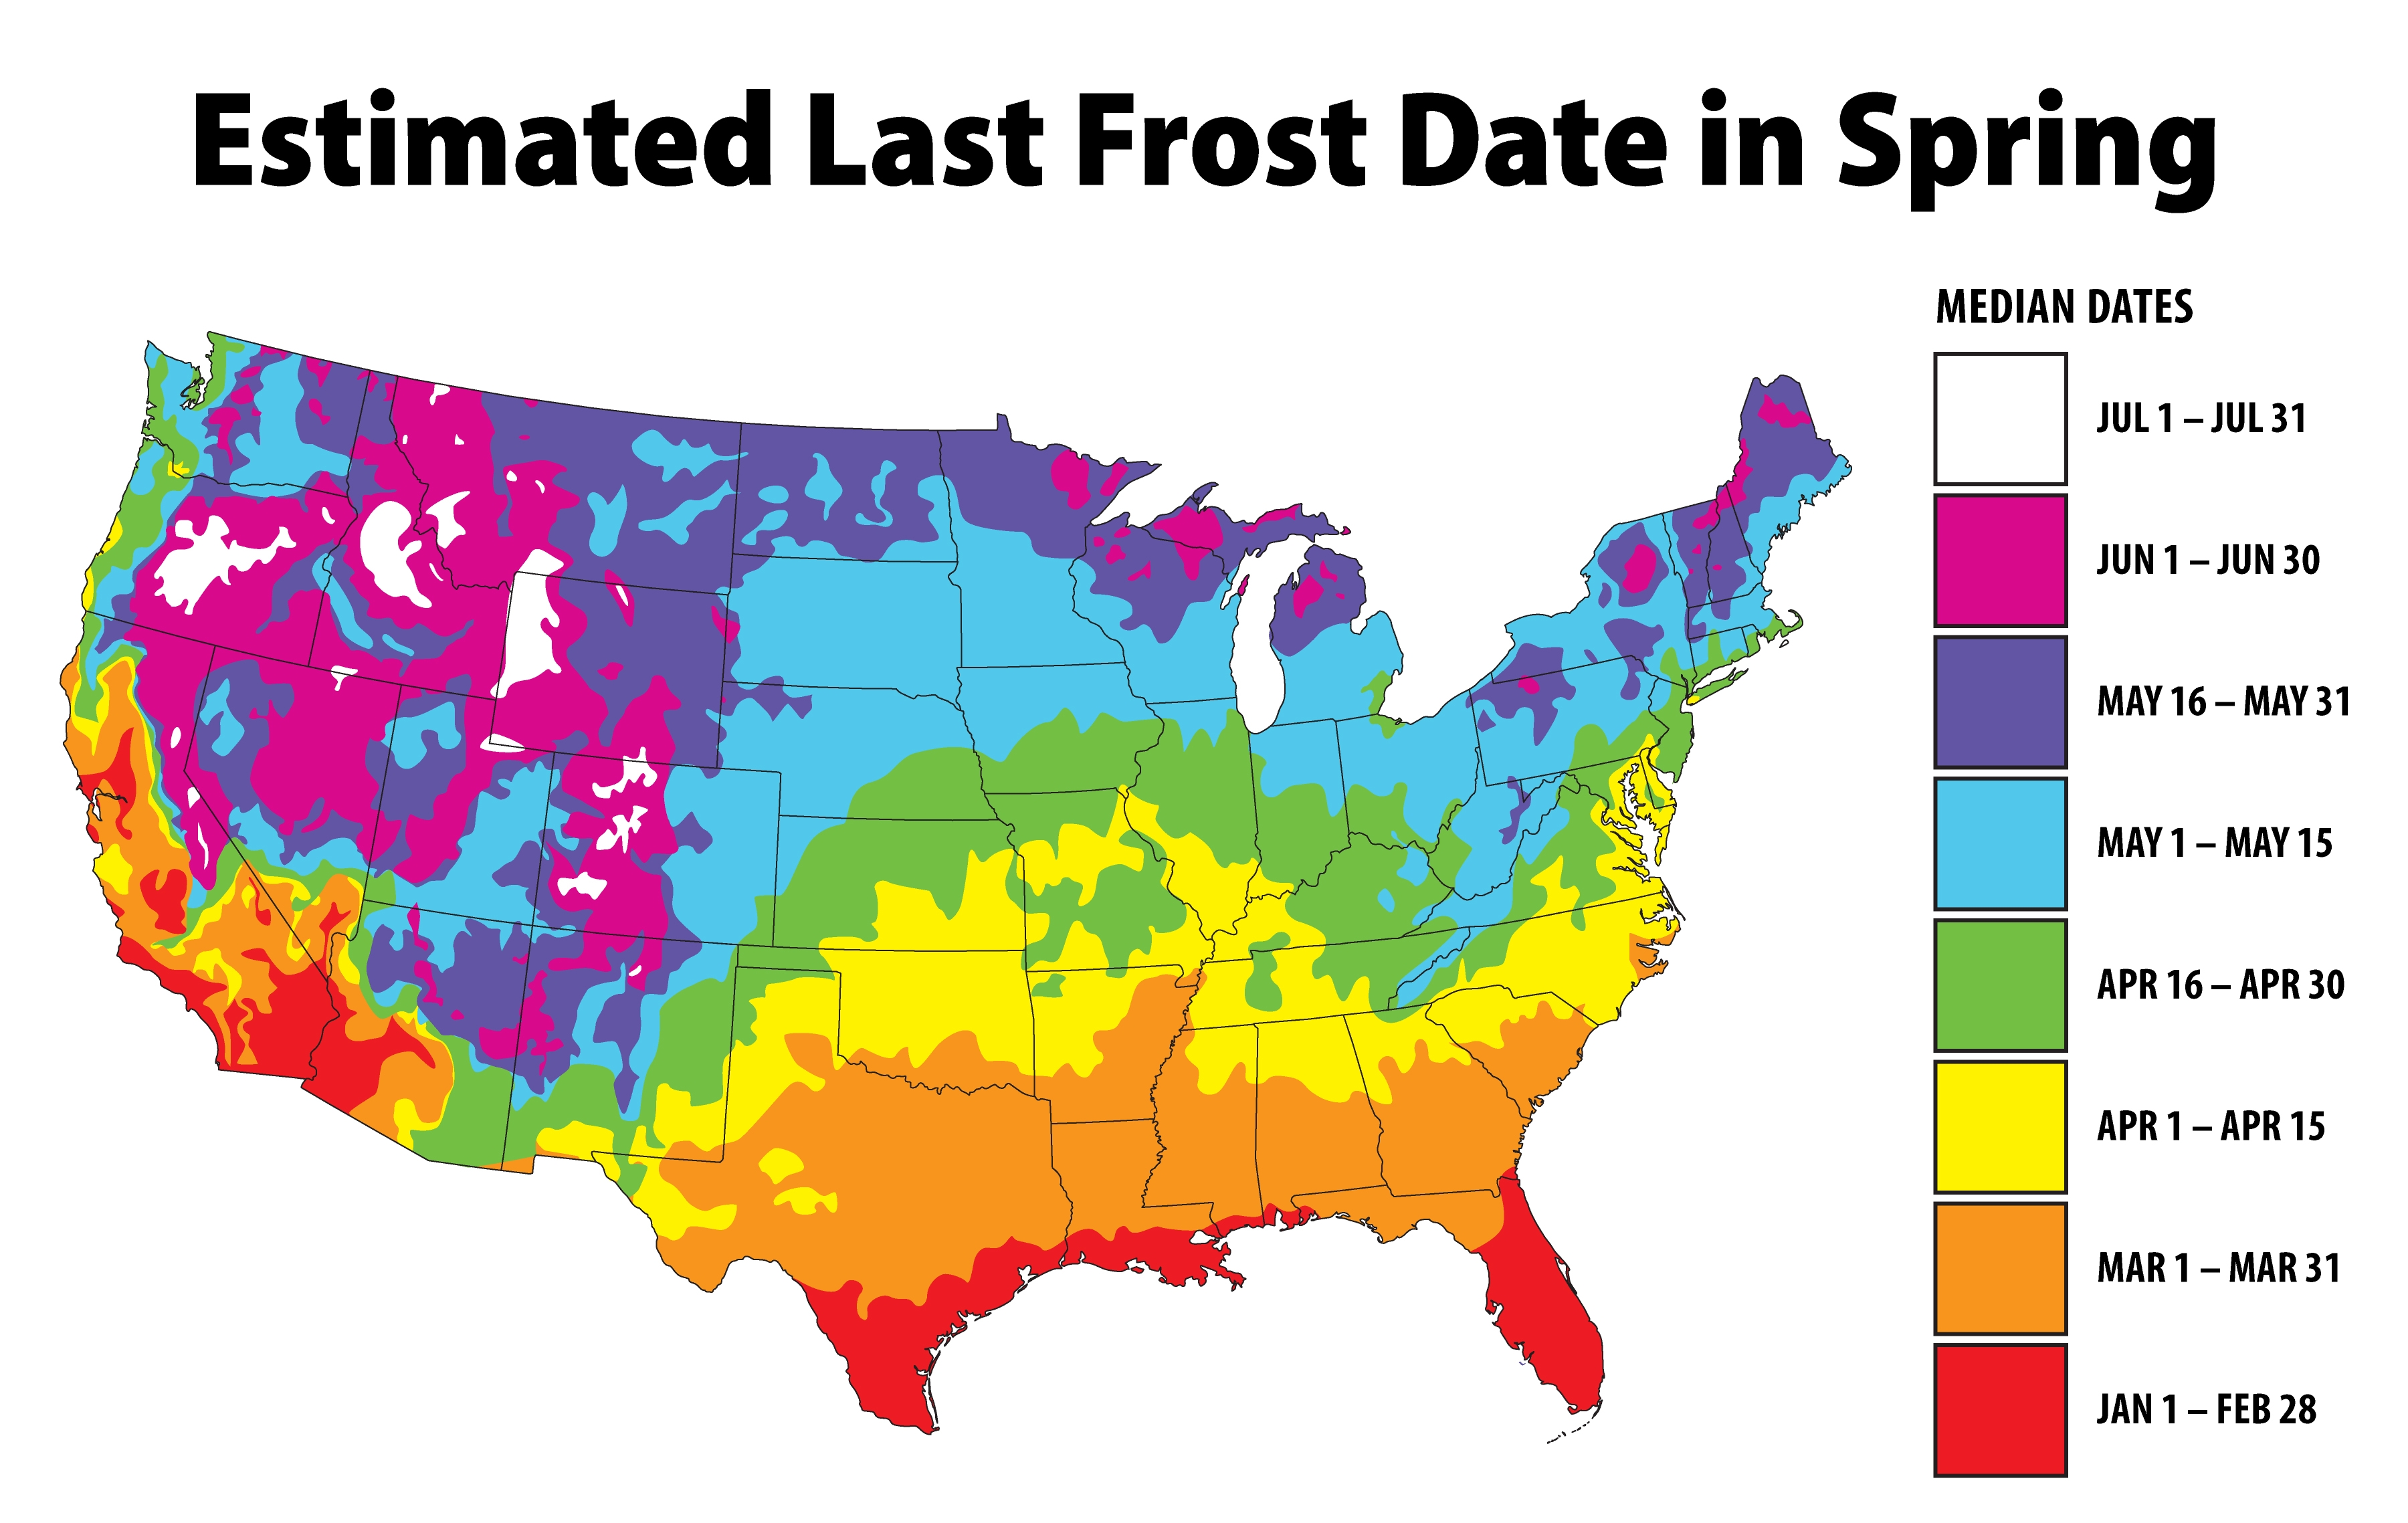 Estimated Last Frost Date in Spring